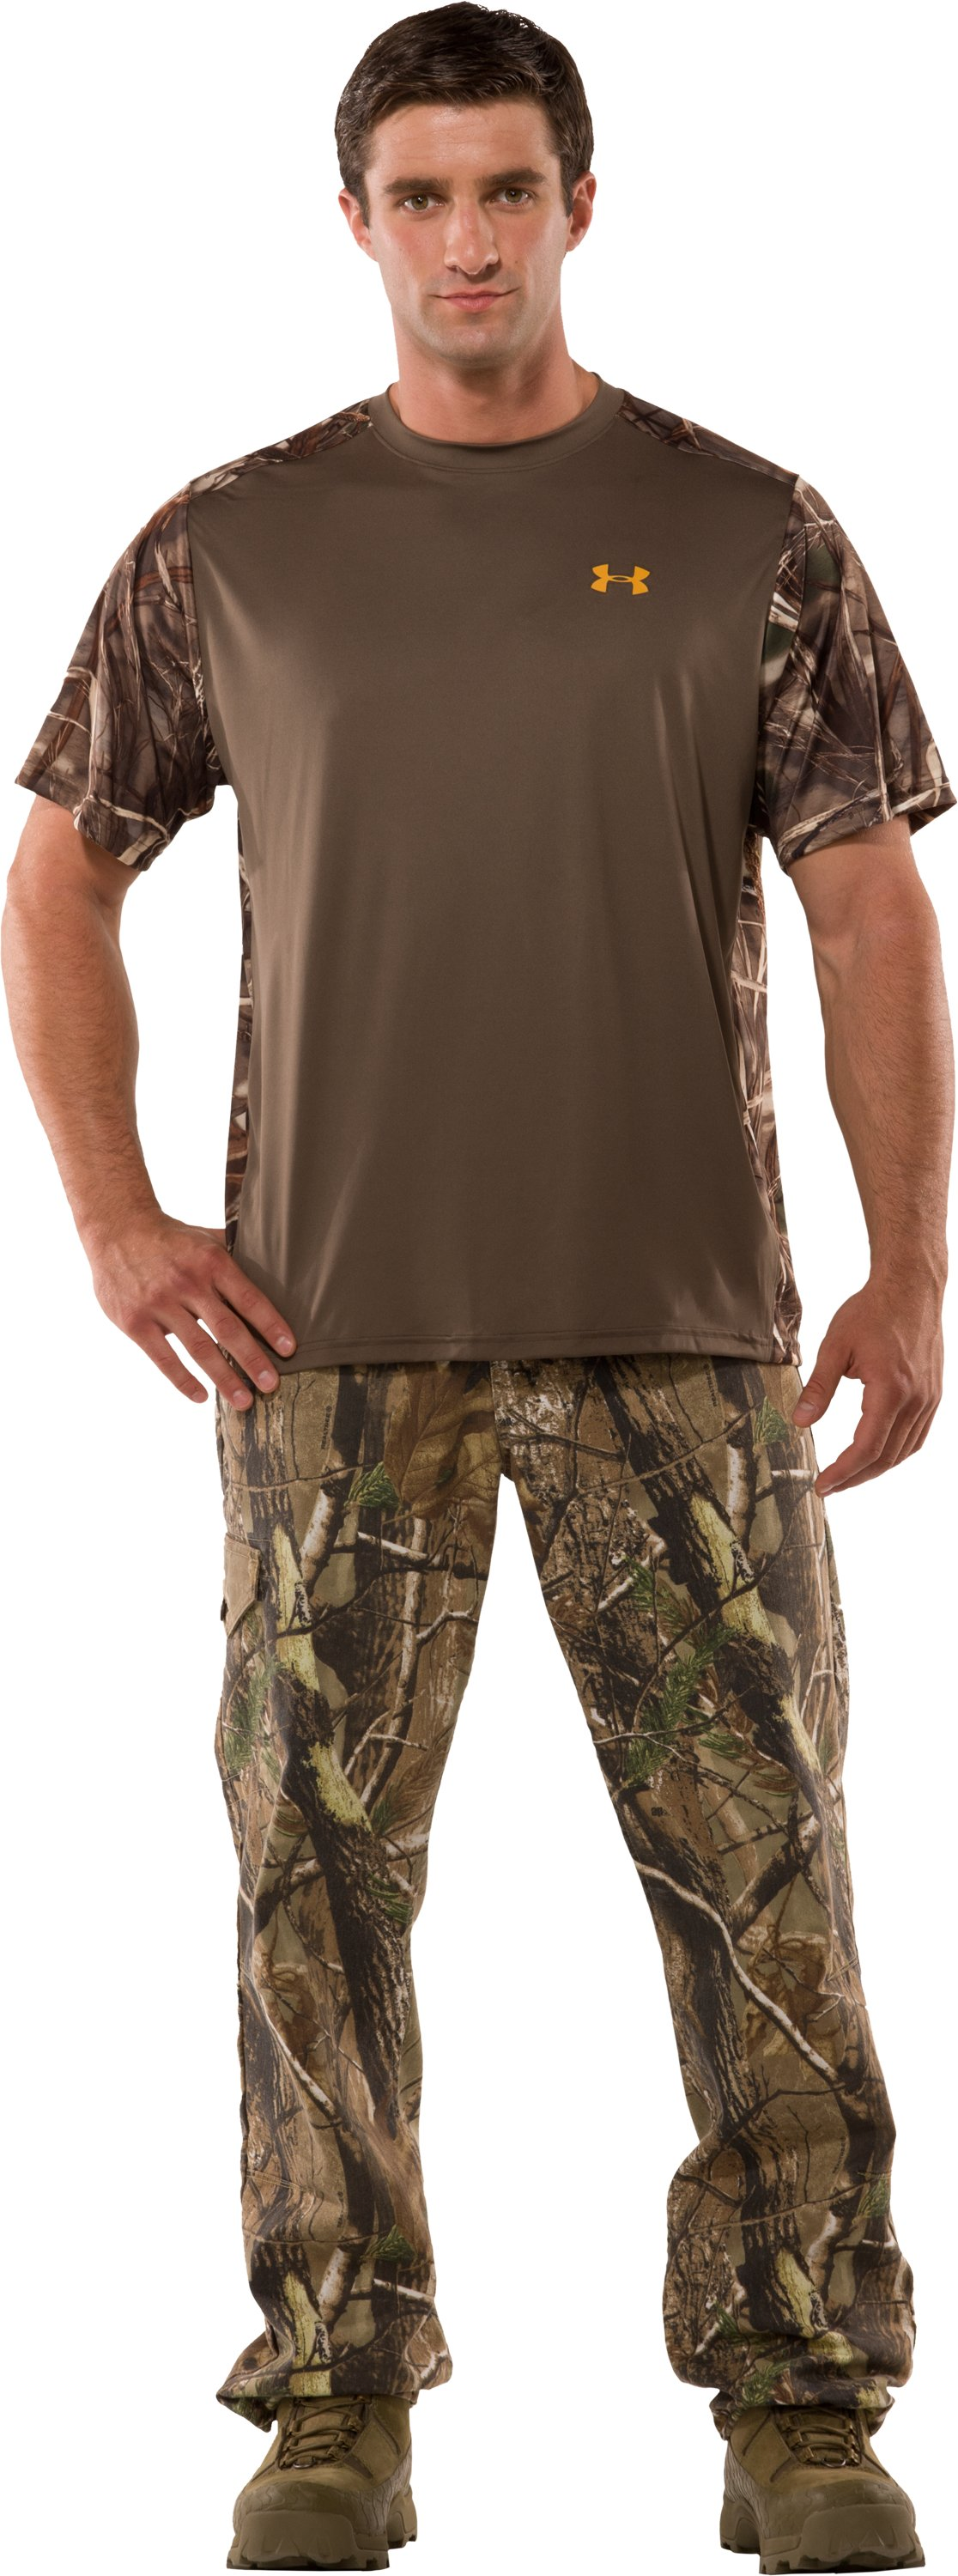 Men's Wylie Short Sleeve Camo T-Shirt, Hearthstone, Front